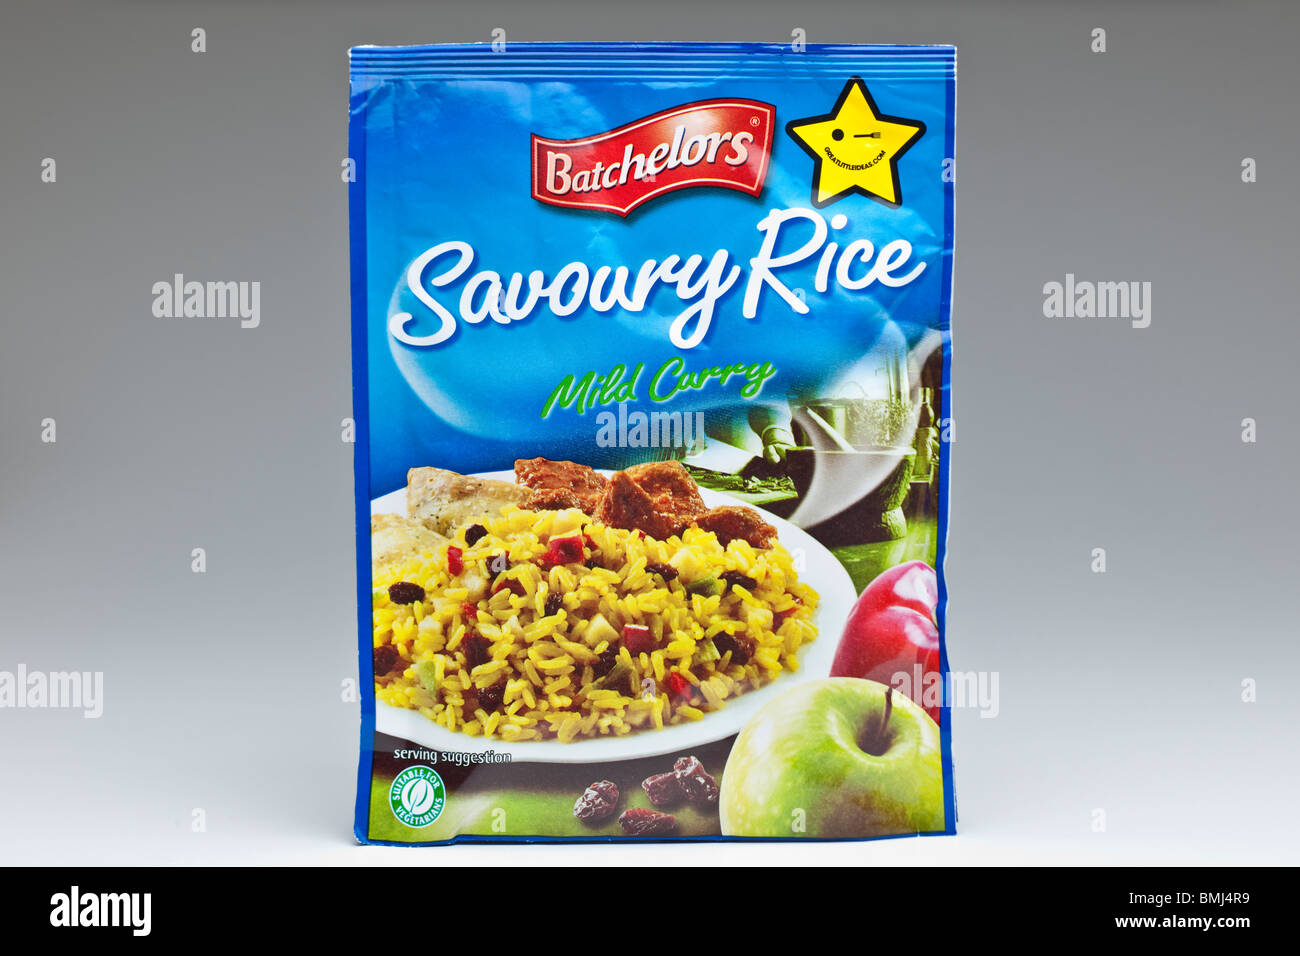 Packet of Batchelors Savoury rice mild curry flavour - Stock Image